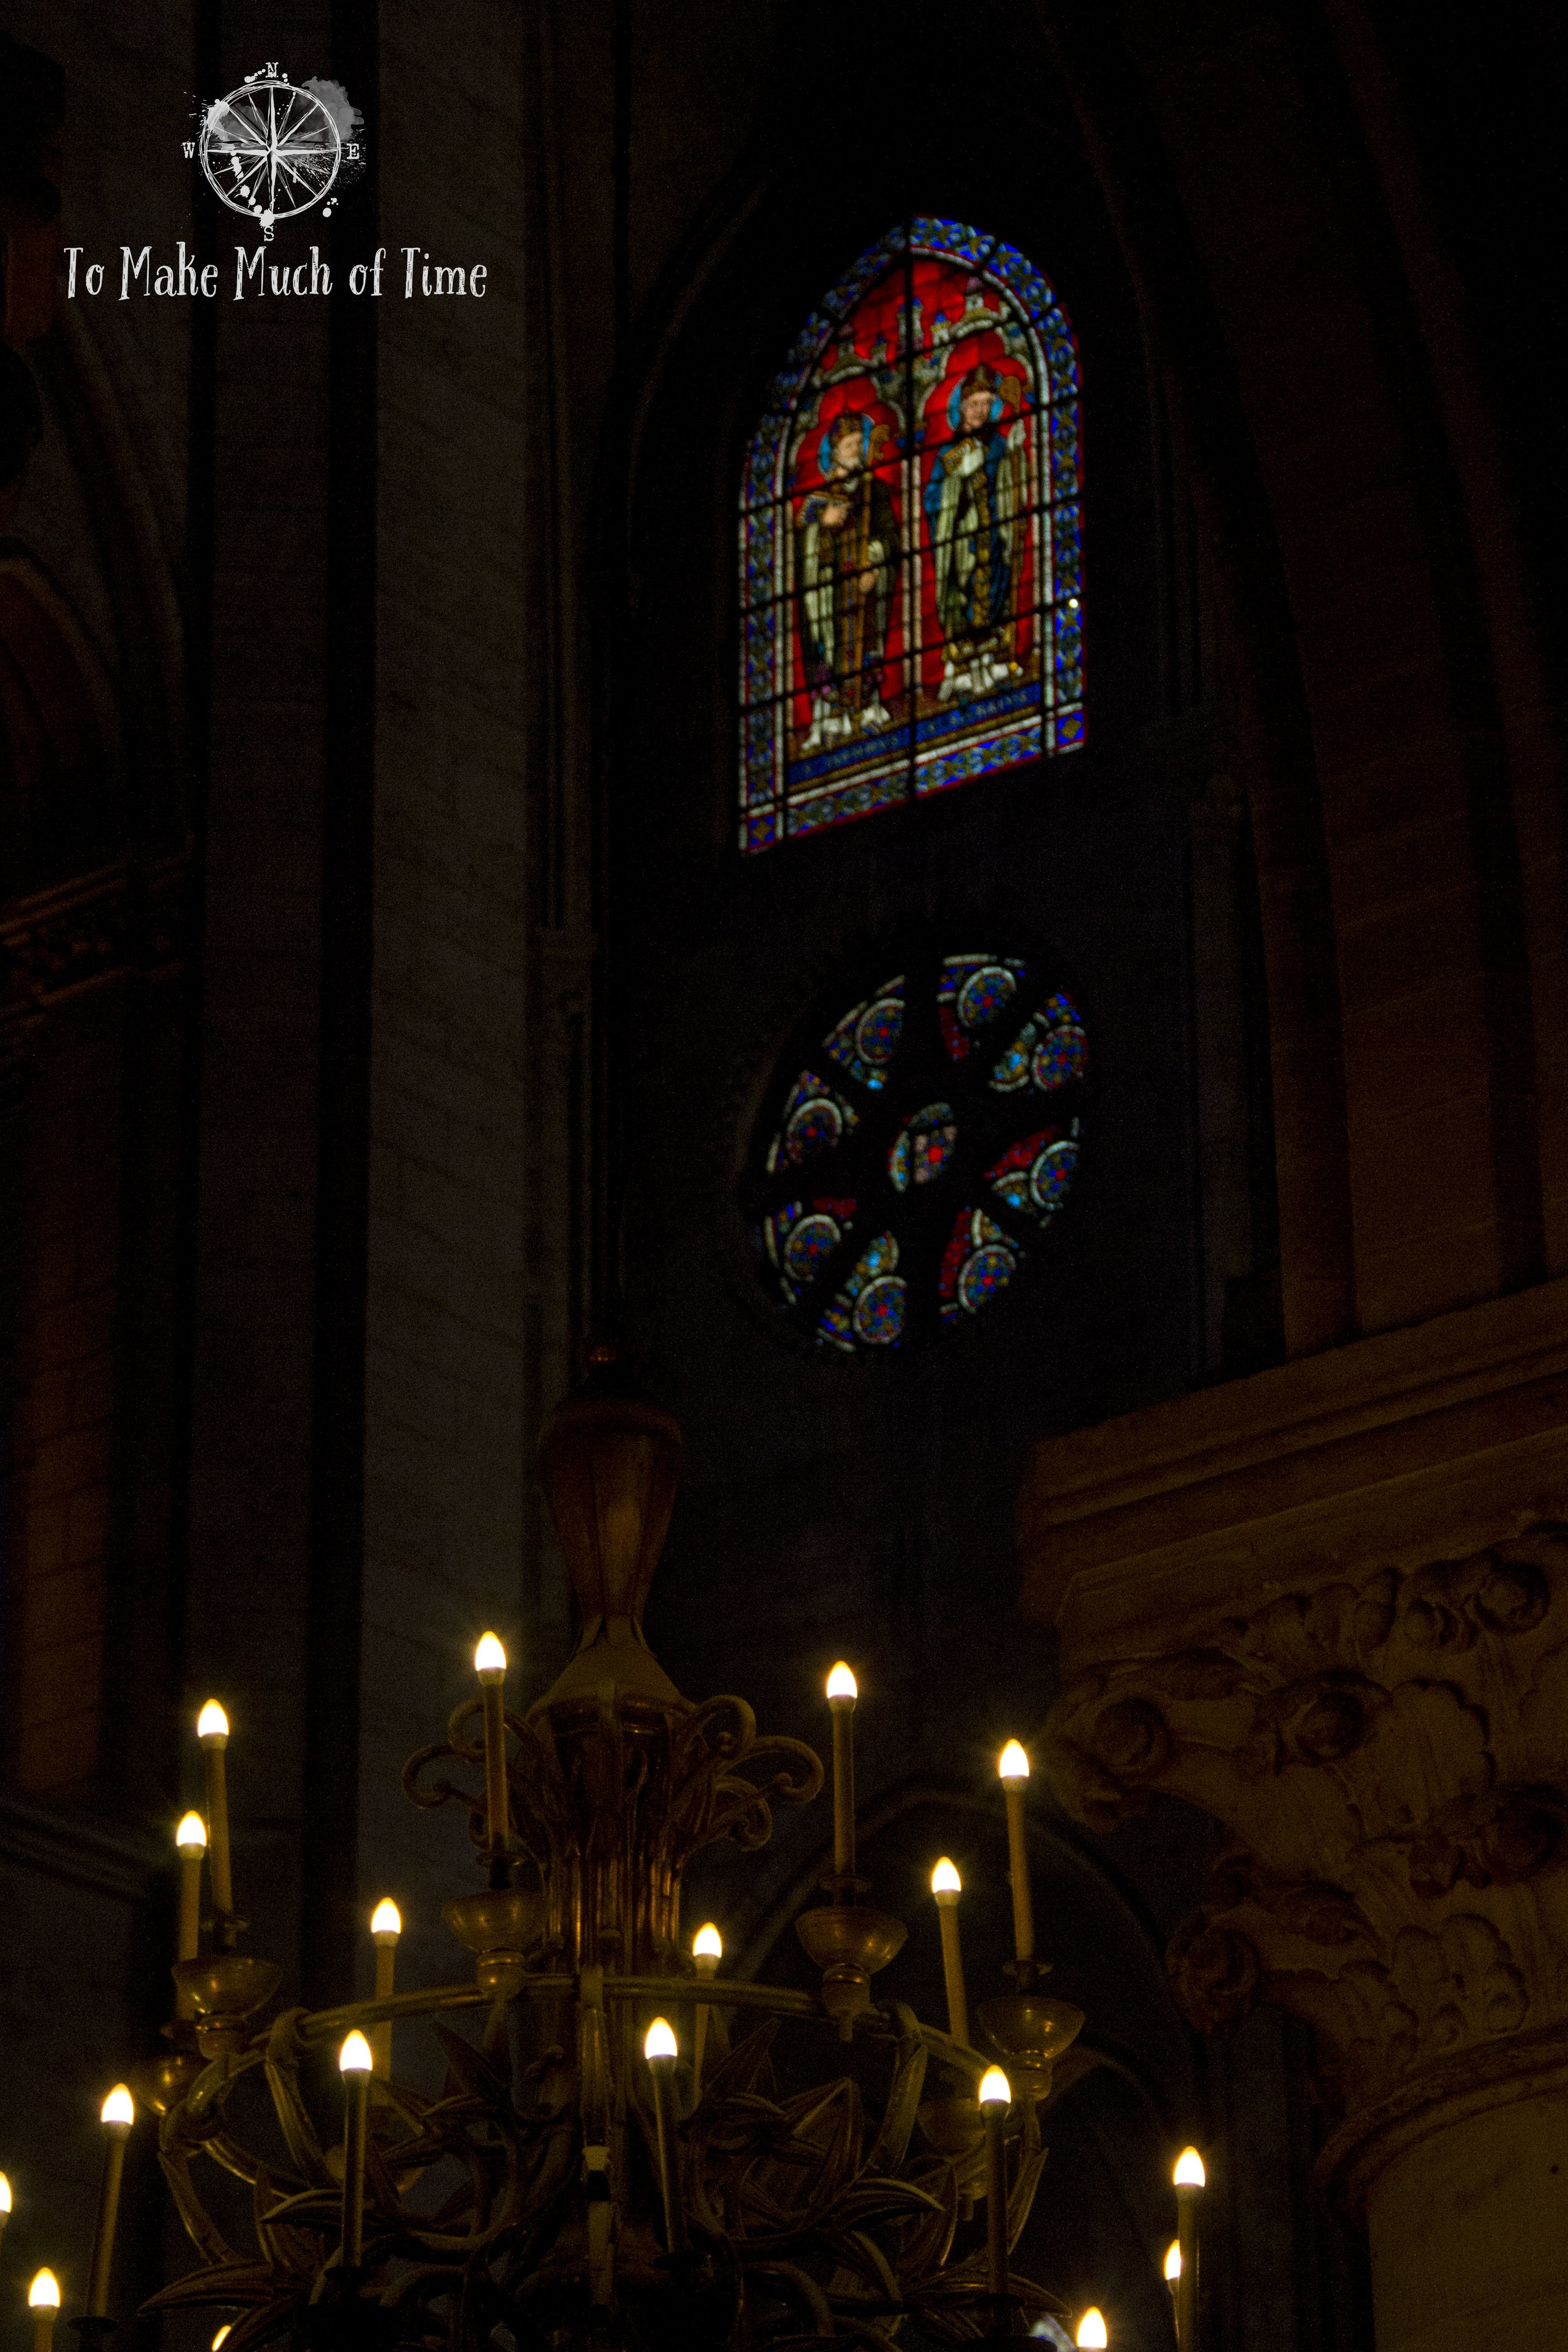 Notre-Dame Cathedral was dimly lit which made the stained glass stand out against the dark walls.